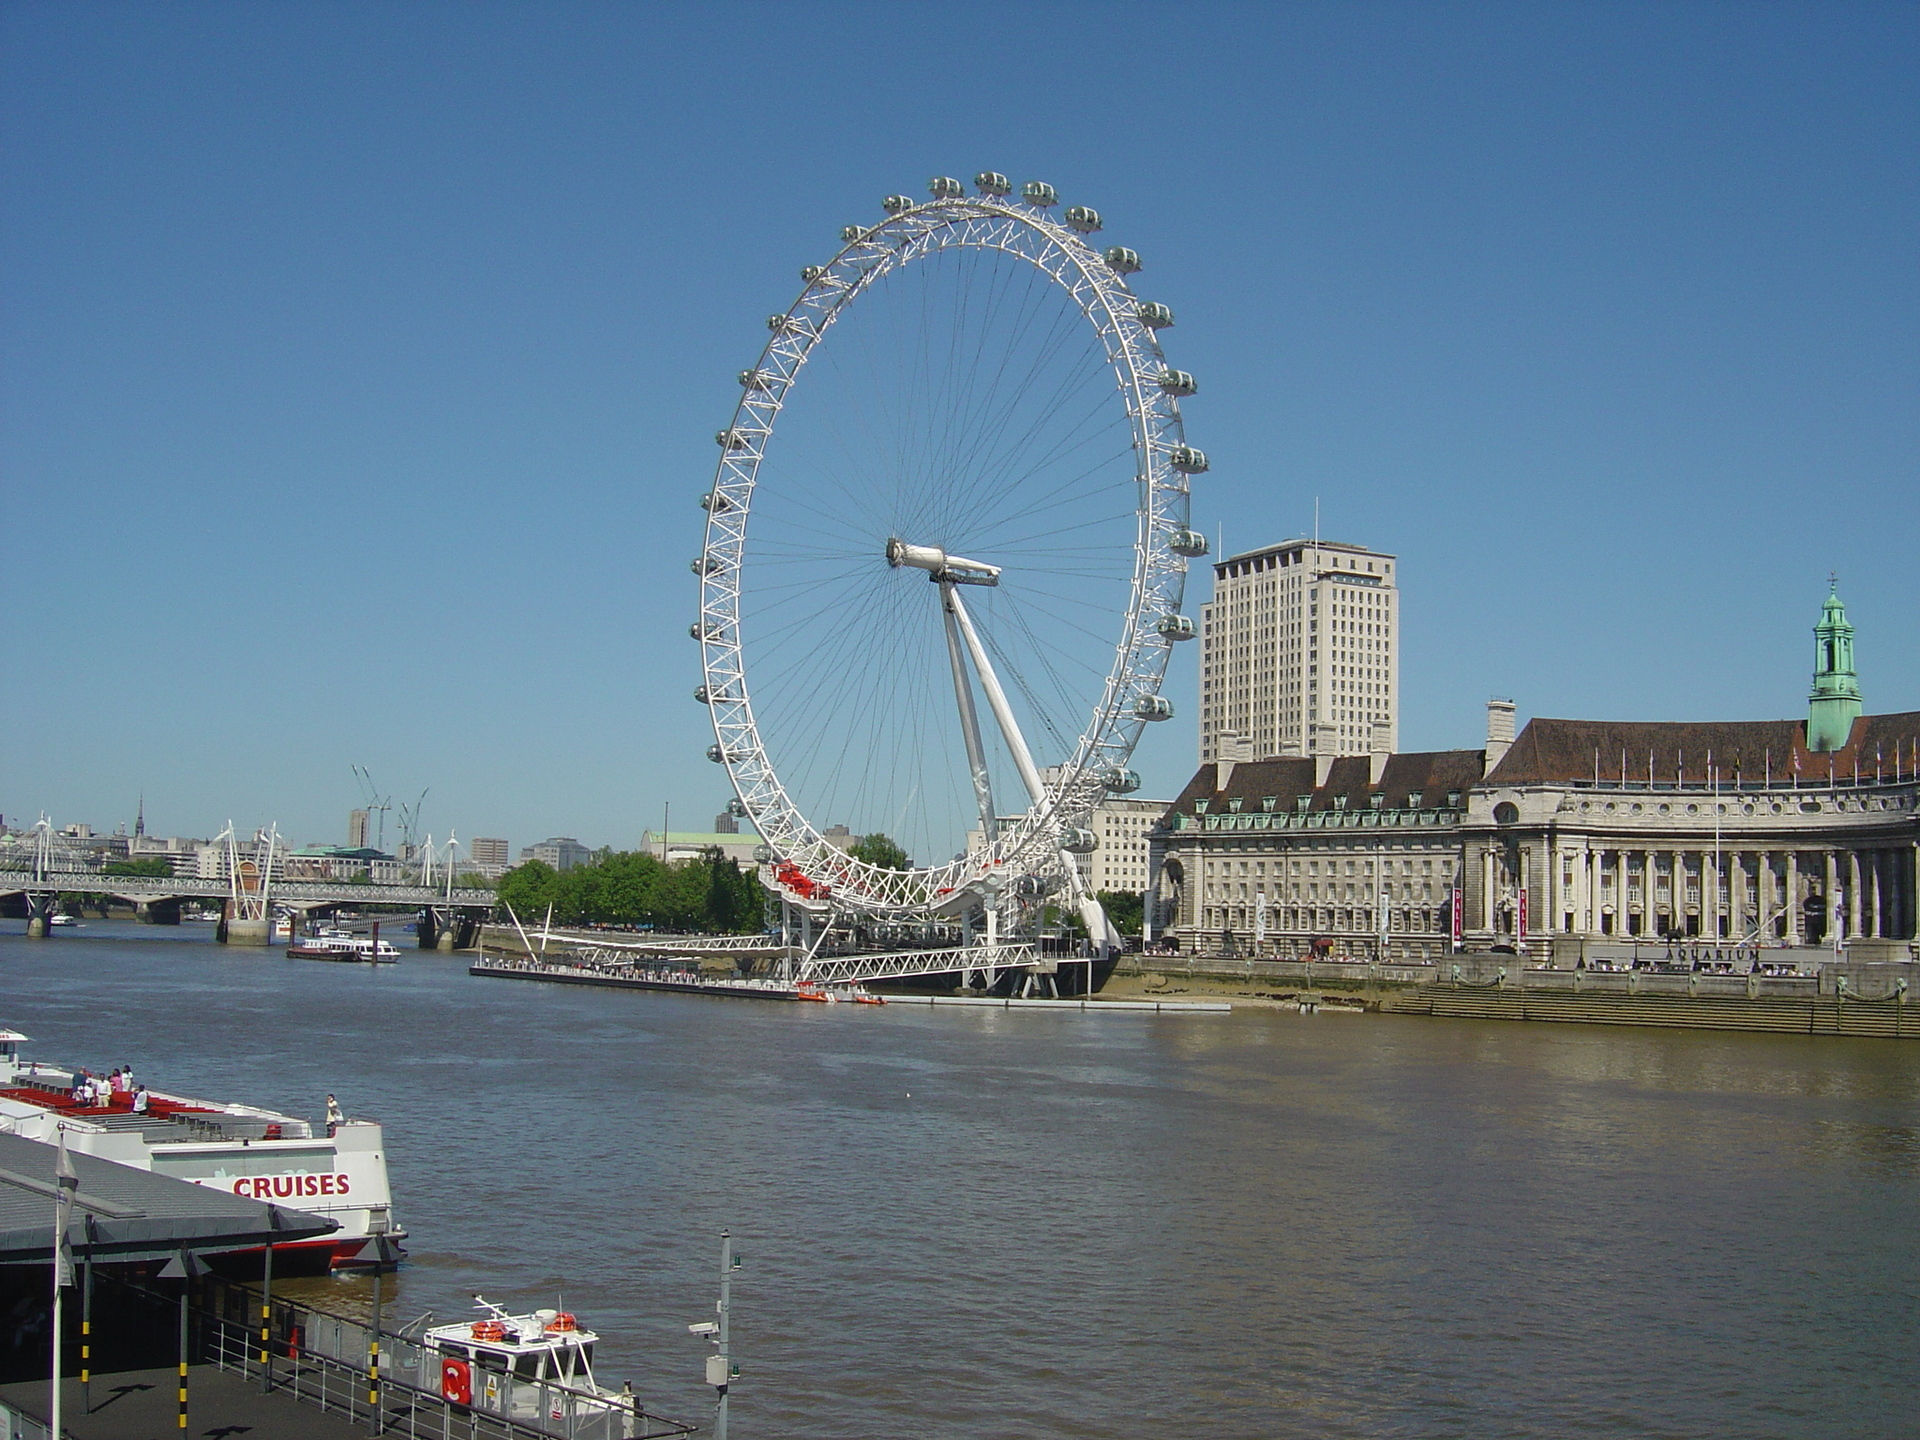 london images london eye hd wallpaper and background photos (158996)